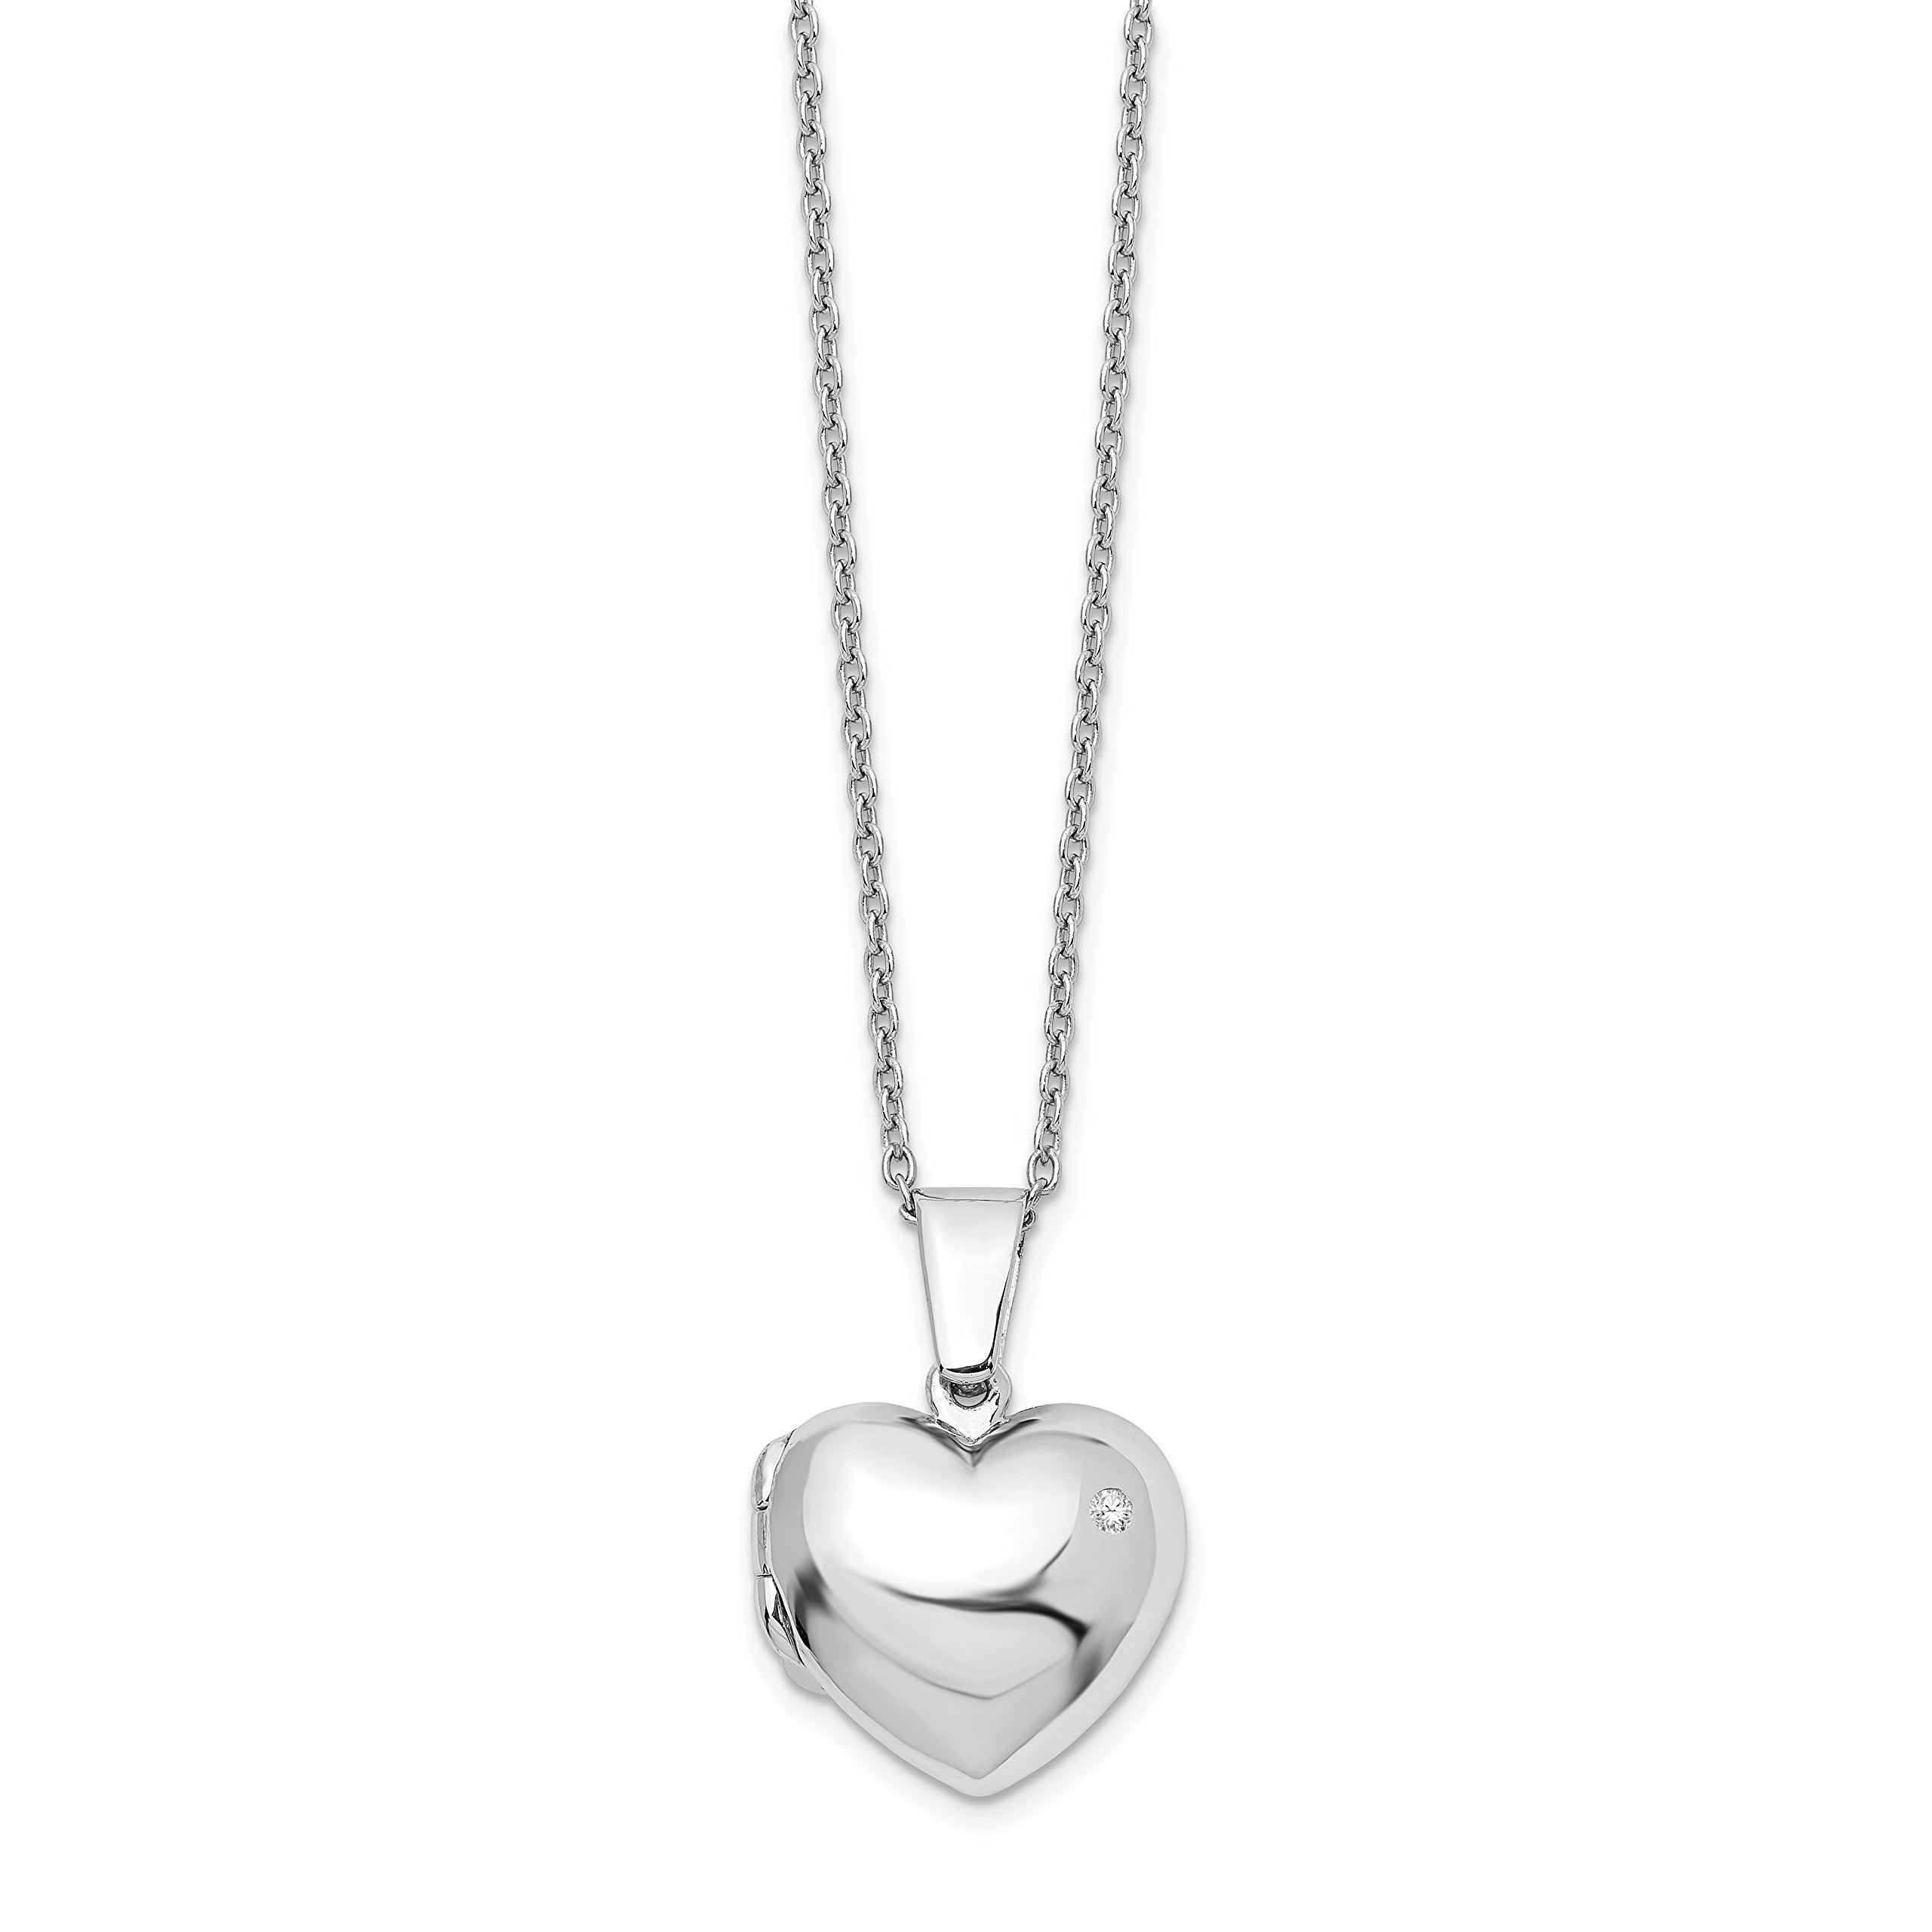 ICE CARATS 925 Sterling Silver Diamond Heart Locket Pendant Chain Necklace Fine Jewelry Gift Set For Women Heart